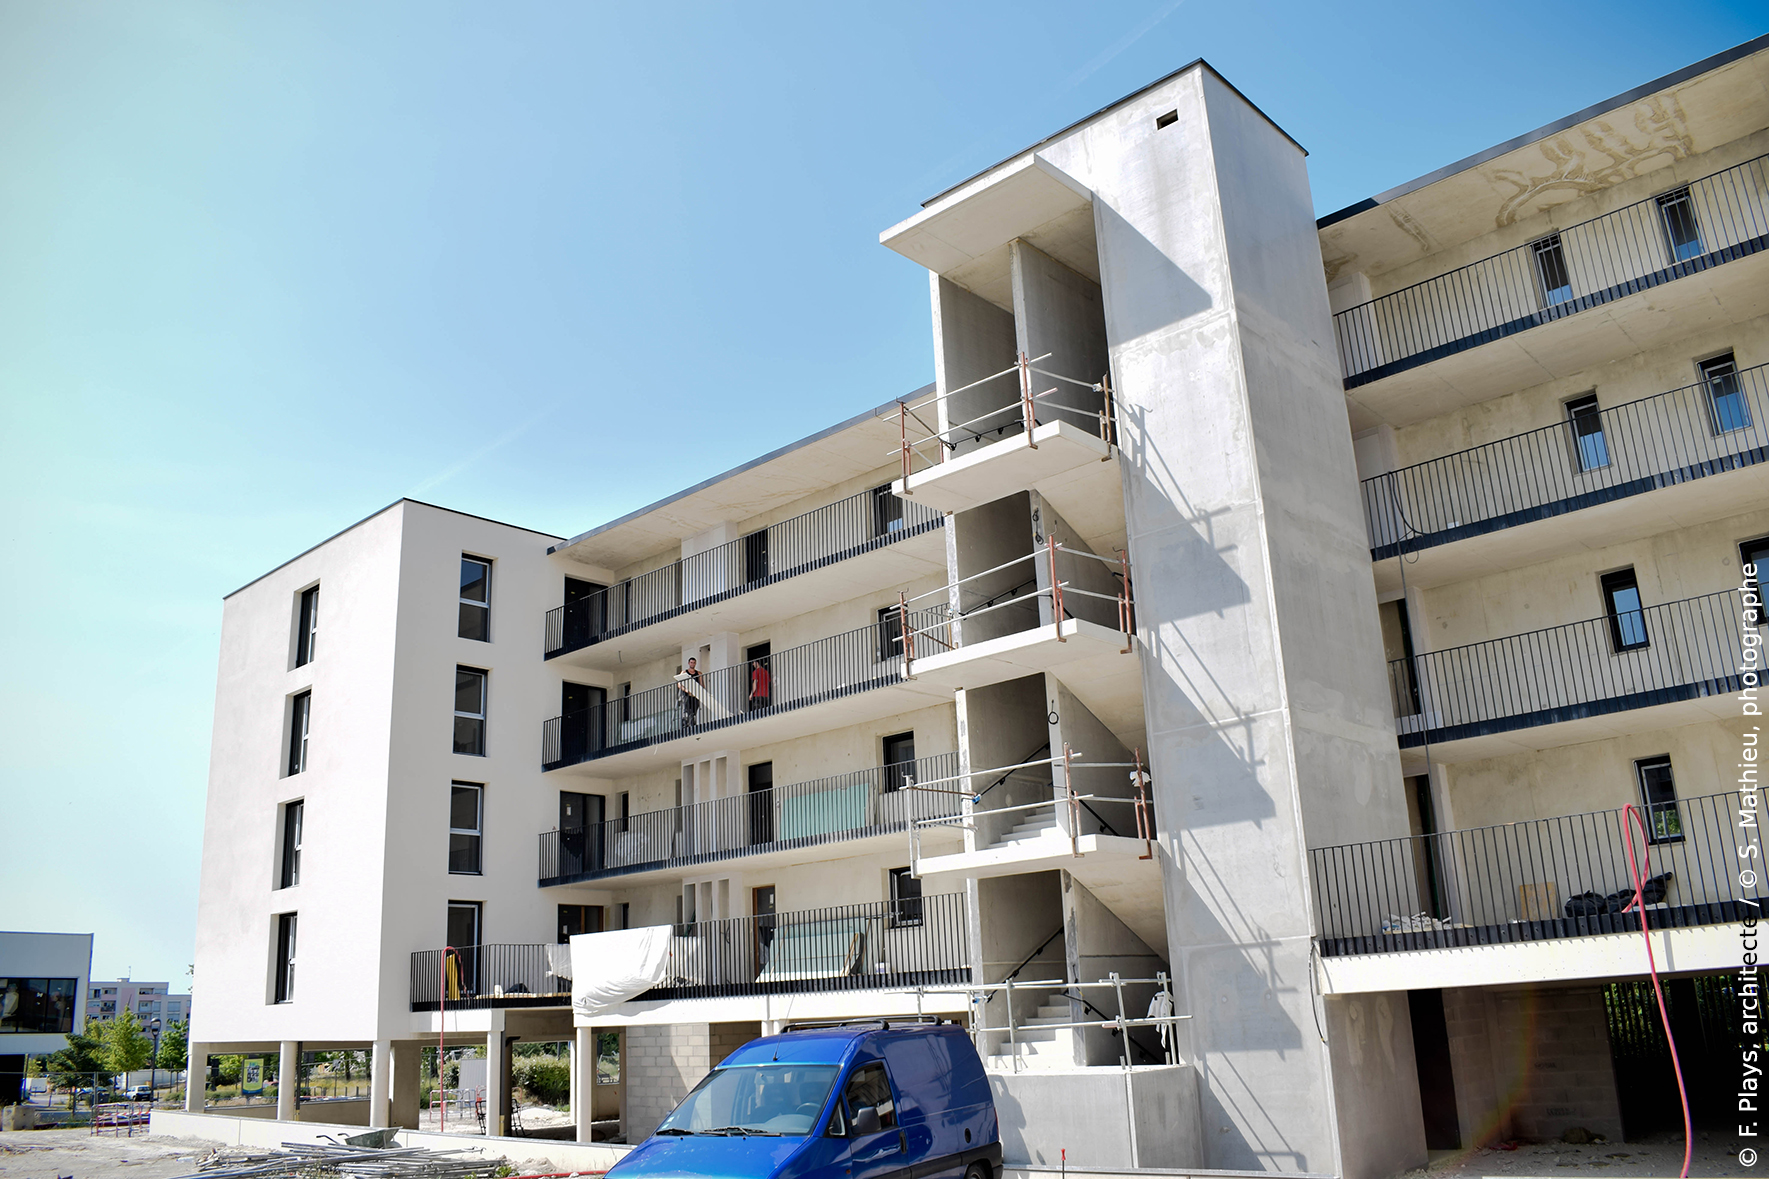 Logements collectifs la chapelle st luc alcaline for Piscine la chapelle st luc